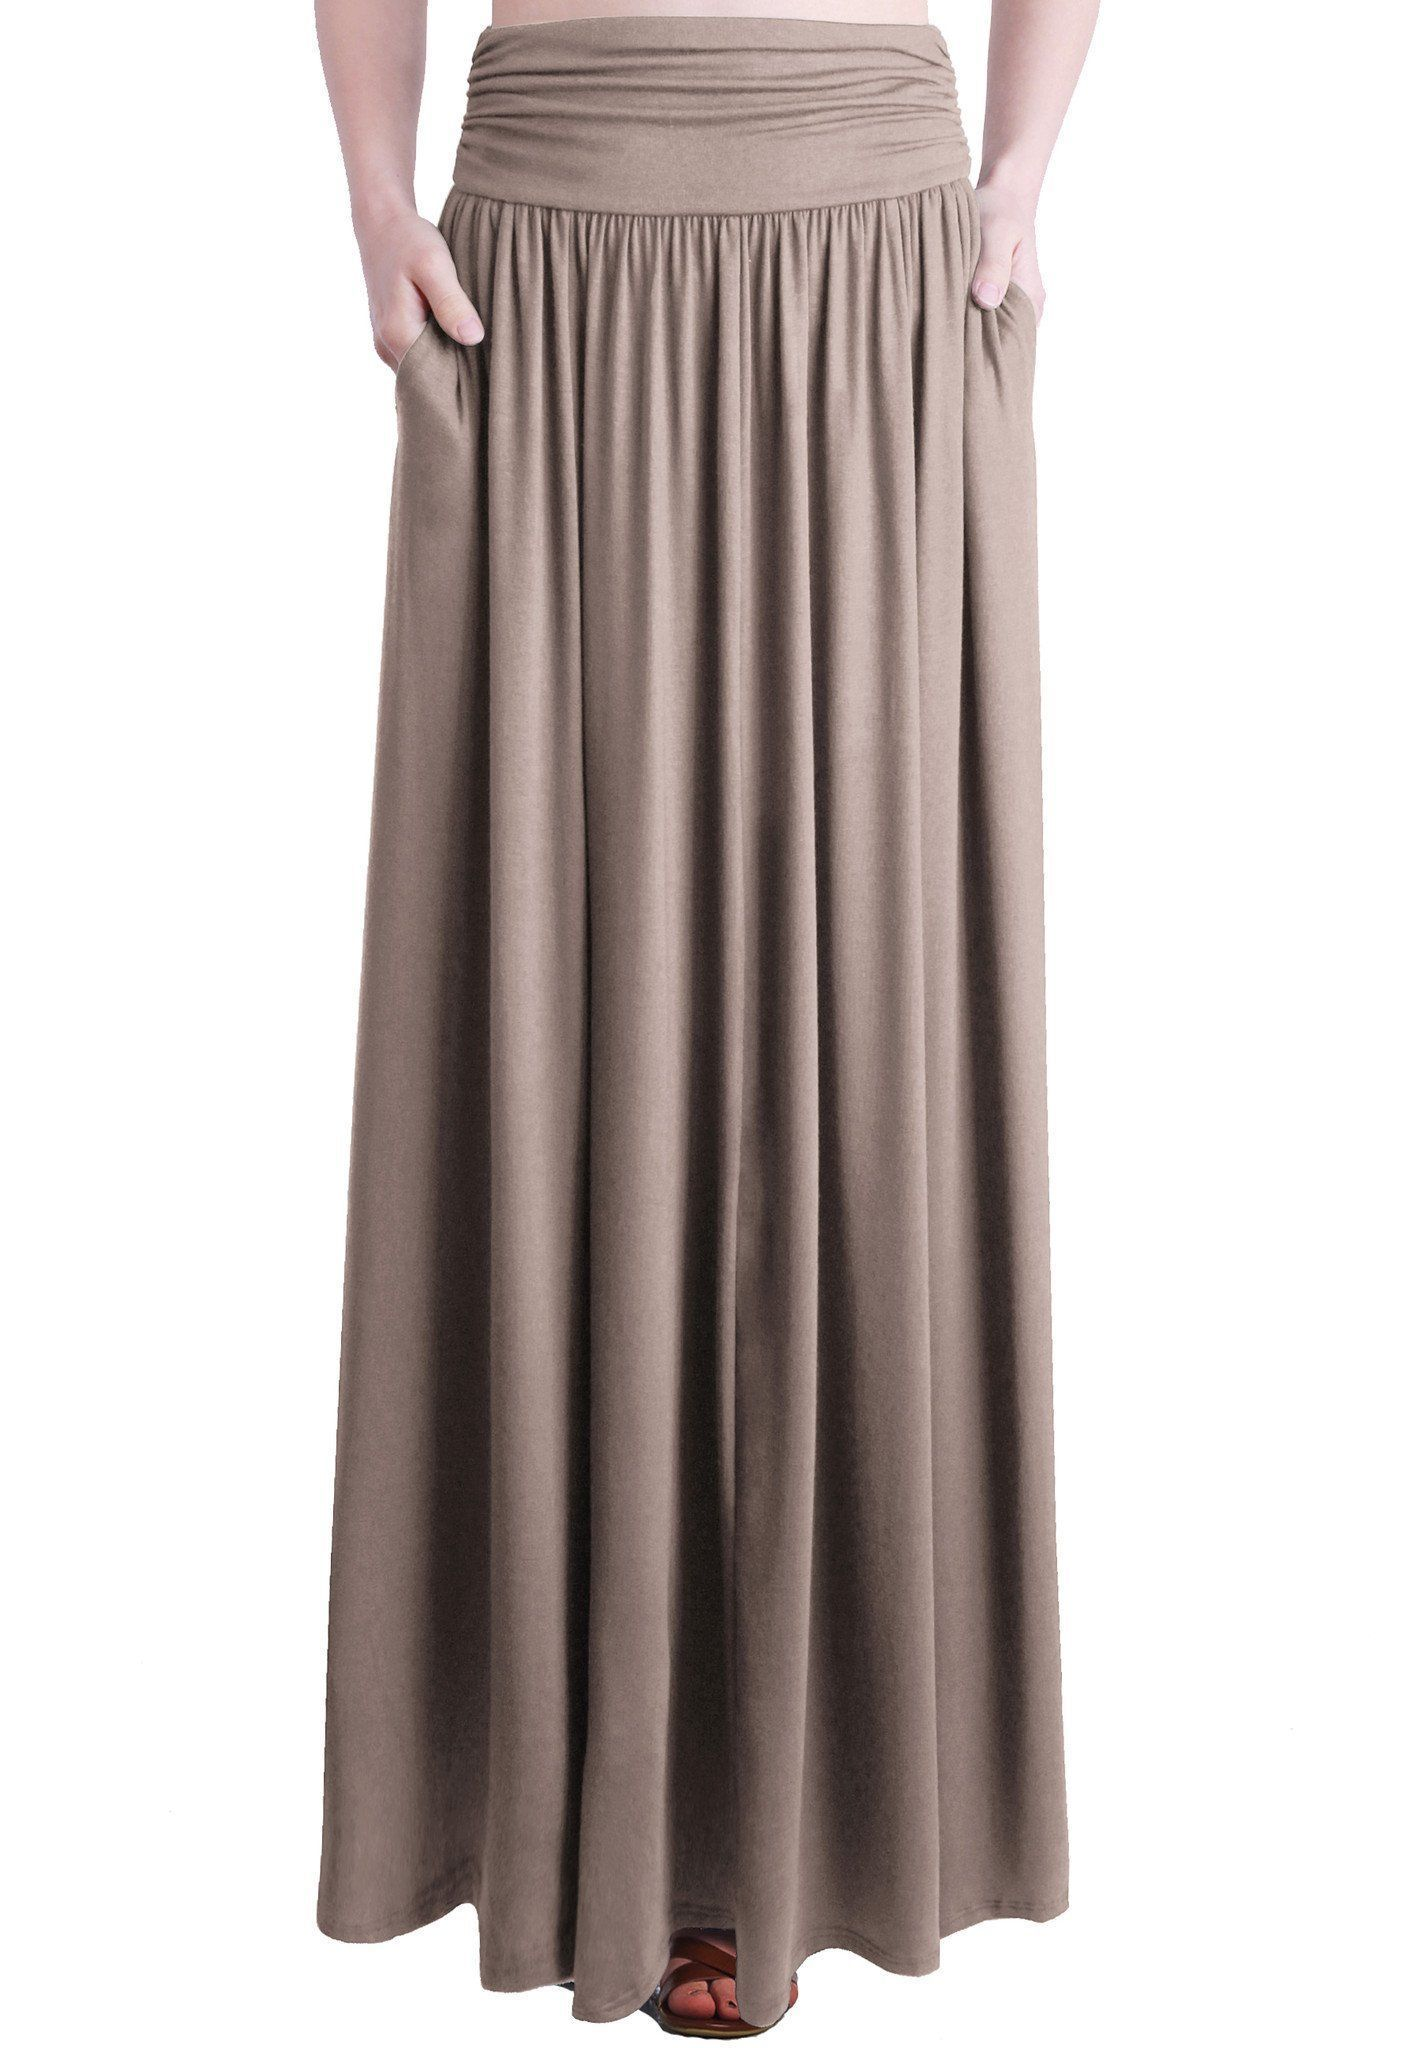 7371fcf8c2 Rayon Spandex High Waist Shirring Maxi Skirt With Pockets in 2019 ...